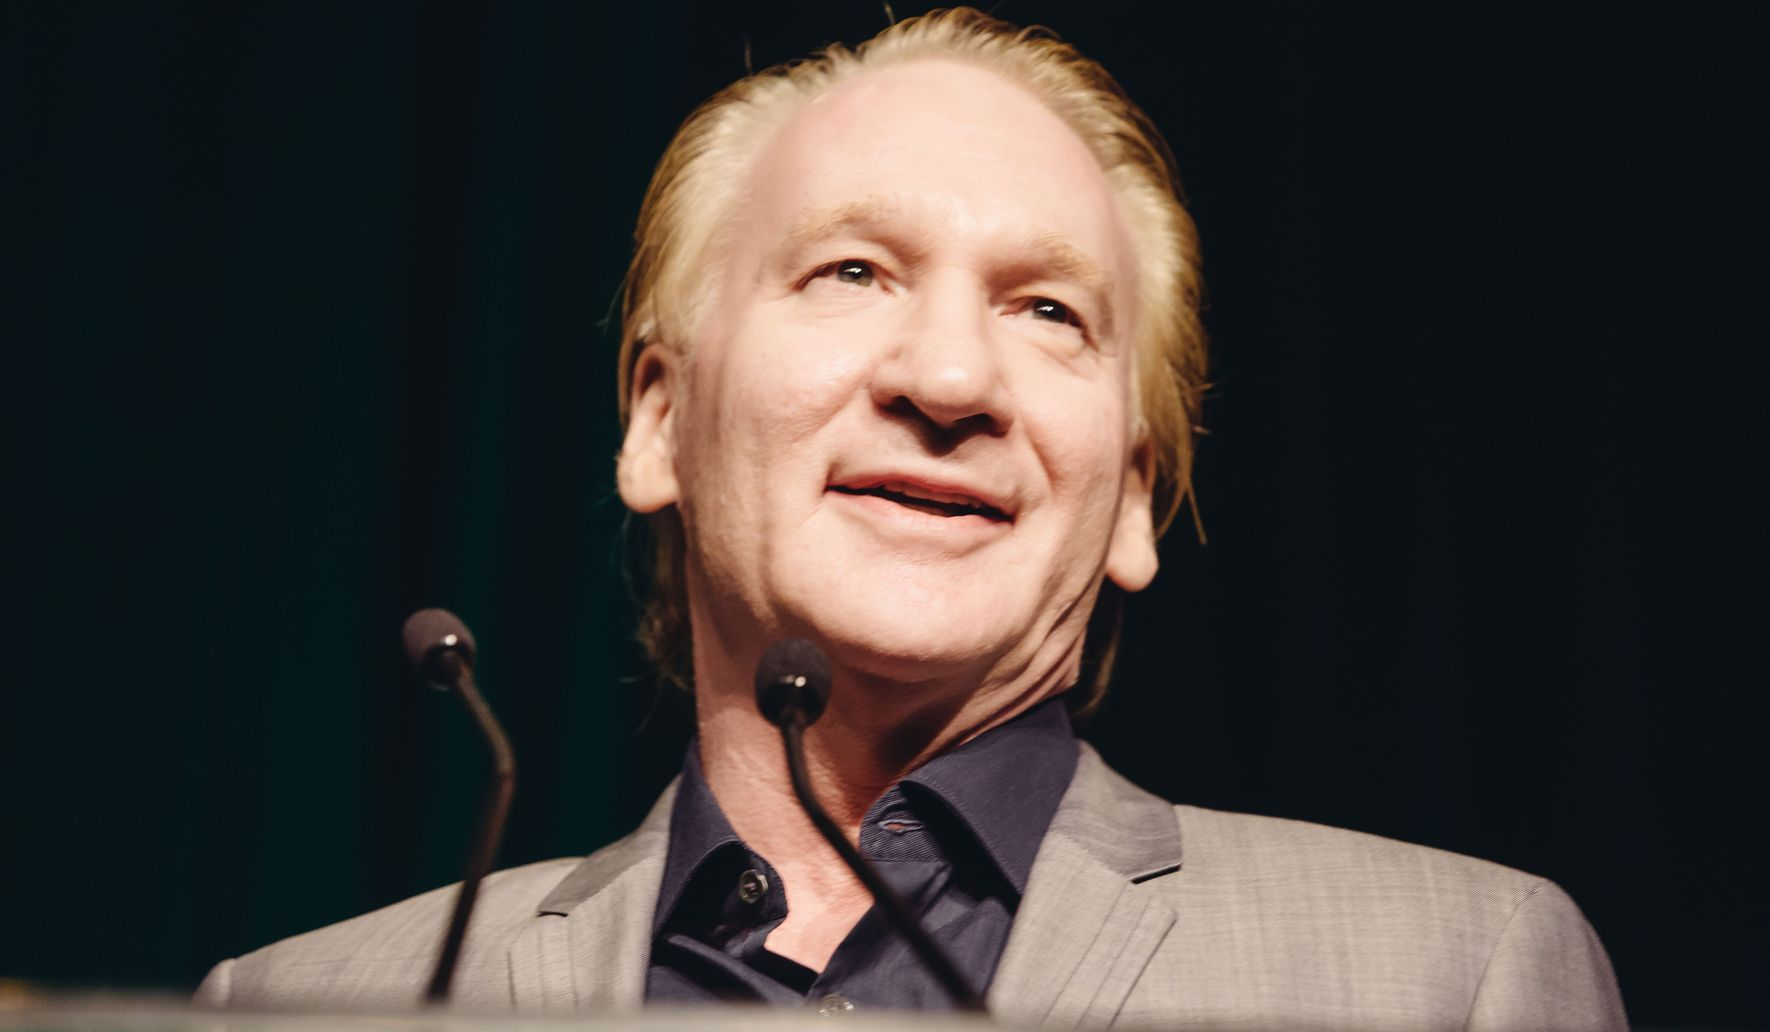 'There will be blood': Maher sees civil war breaking out if we don't 'learn to live with each other'